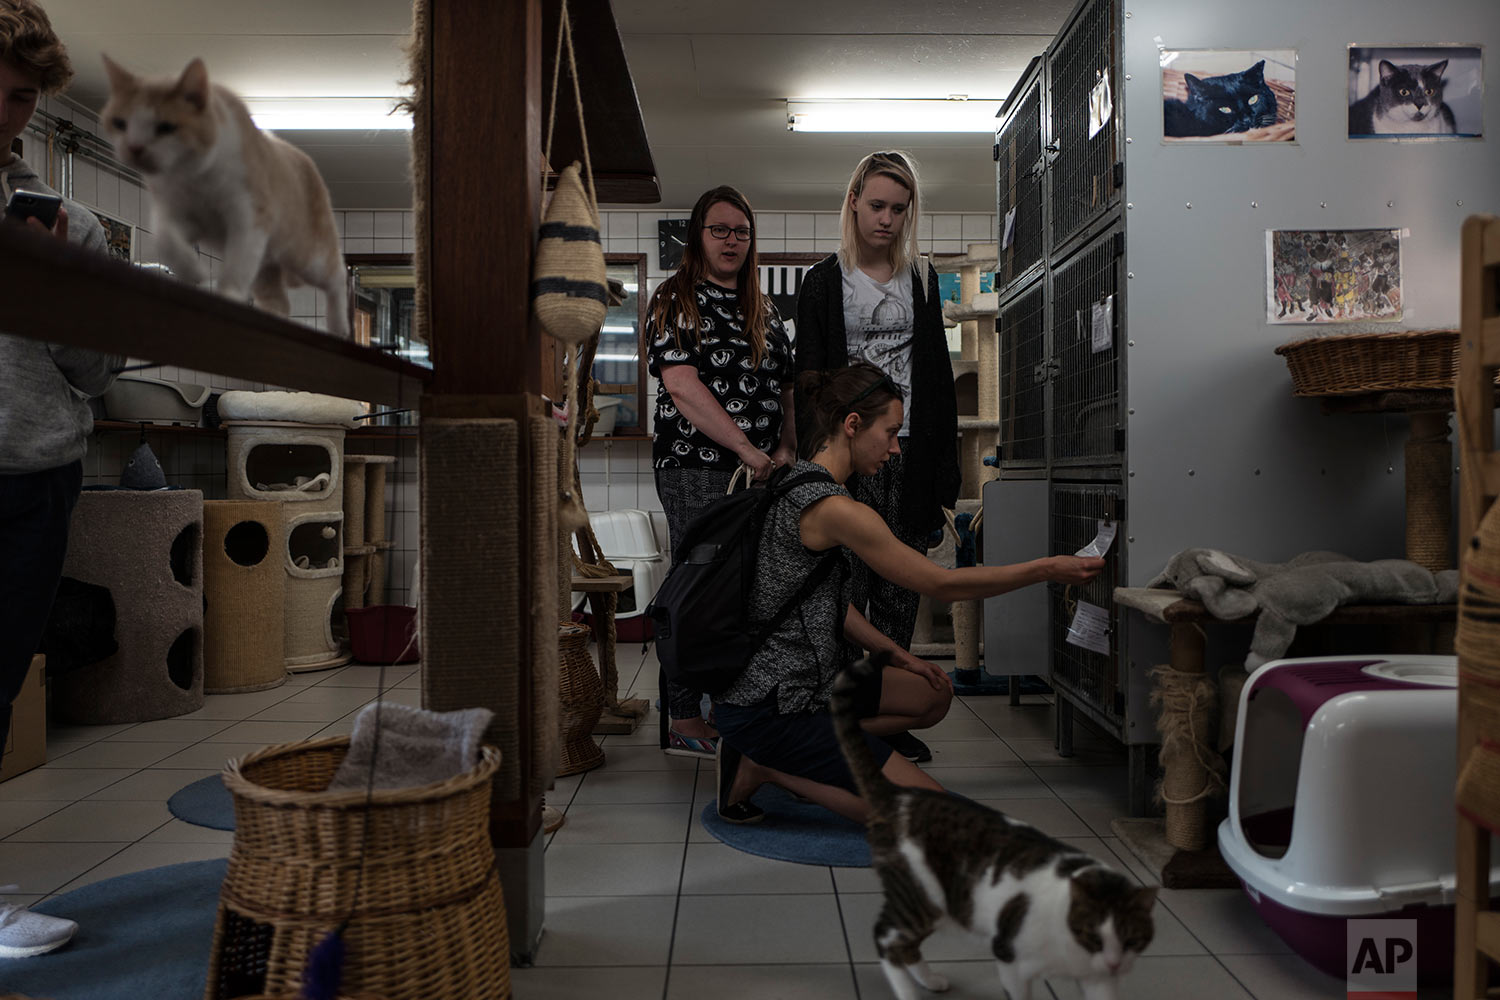 In this Thursday, Aug. 3, 2017 photo, tourists from Finland visit the Catboat shelter in Amsterdam, Netherlands. (AP Photo/Muhammed Muheisen)